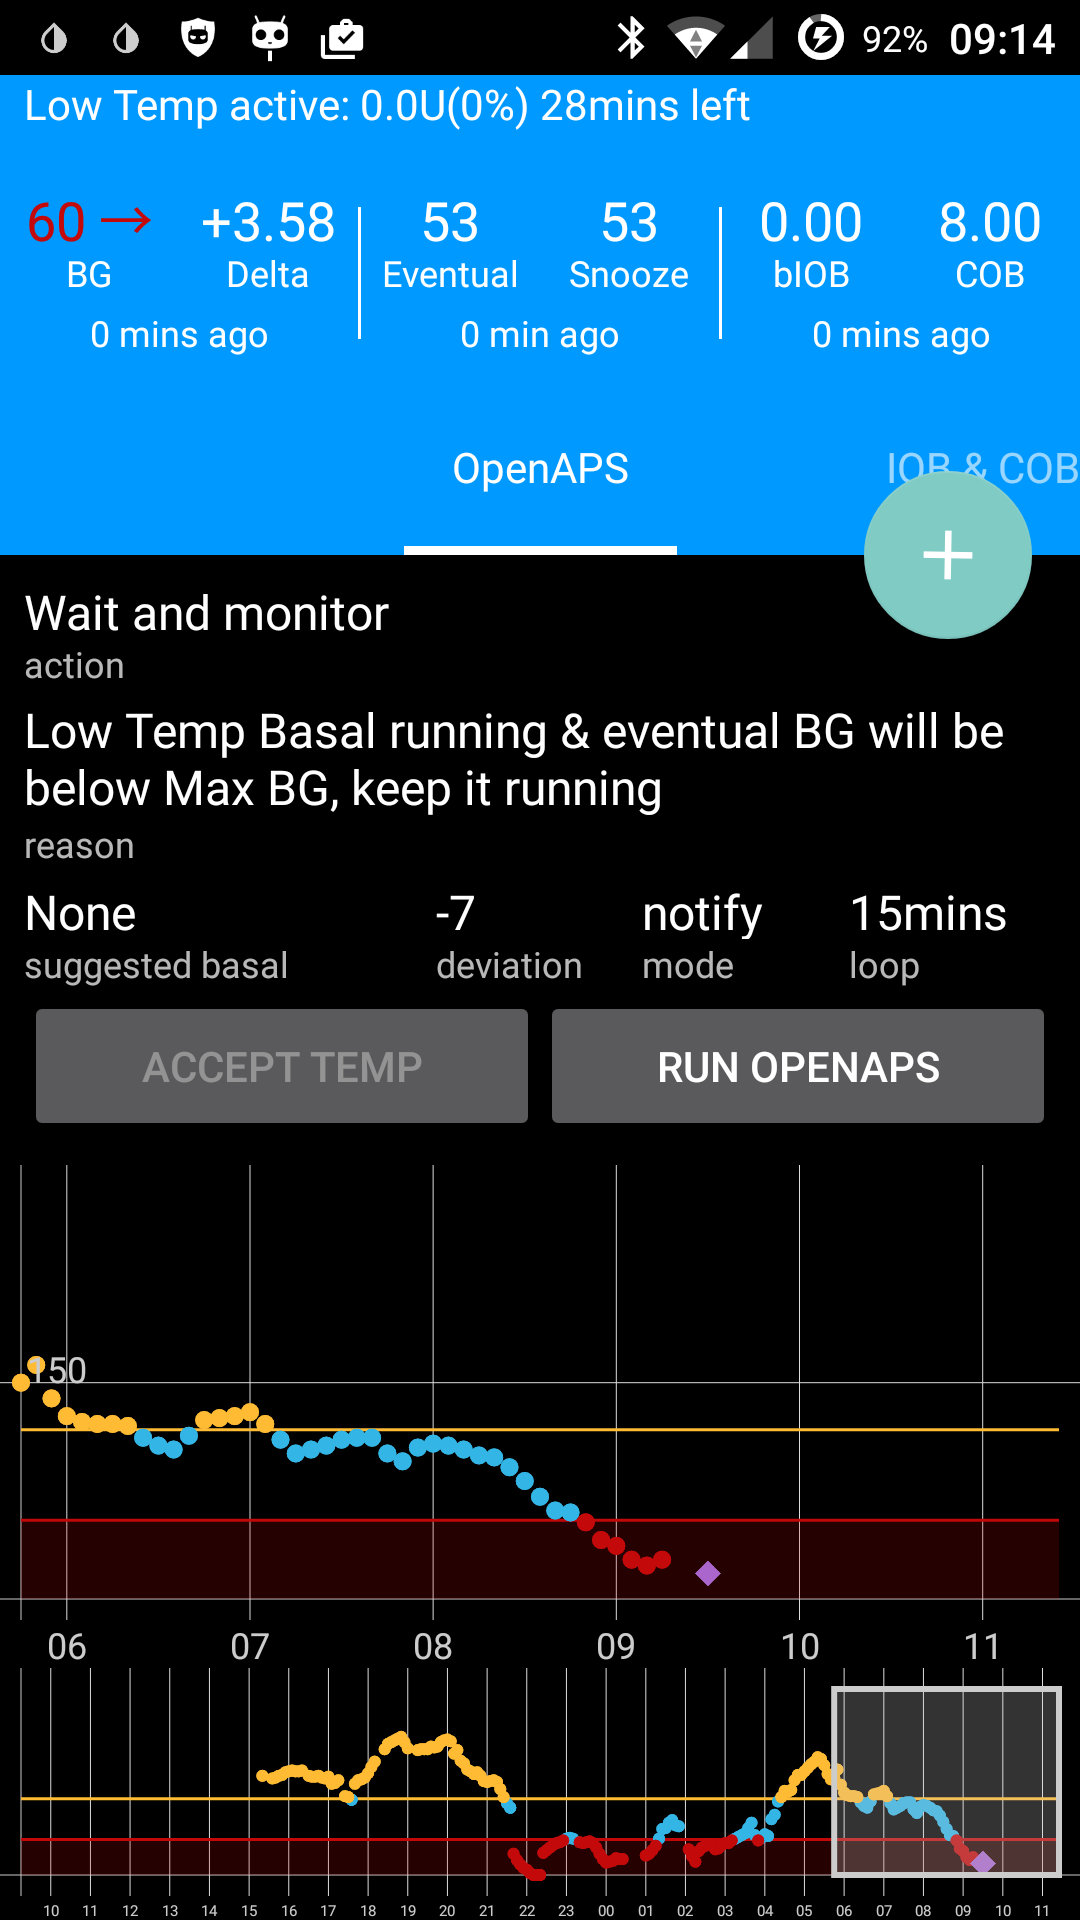 DIY, Open Loop, Artificial Pancreas